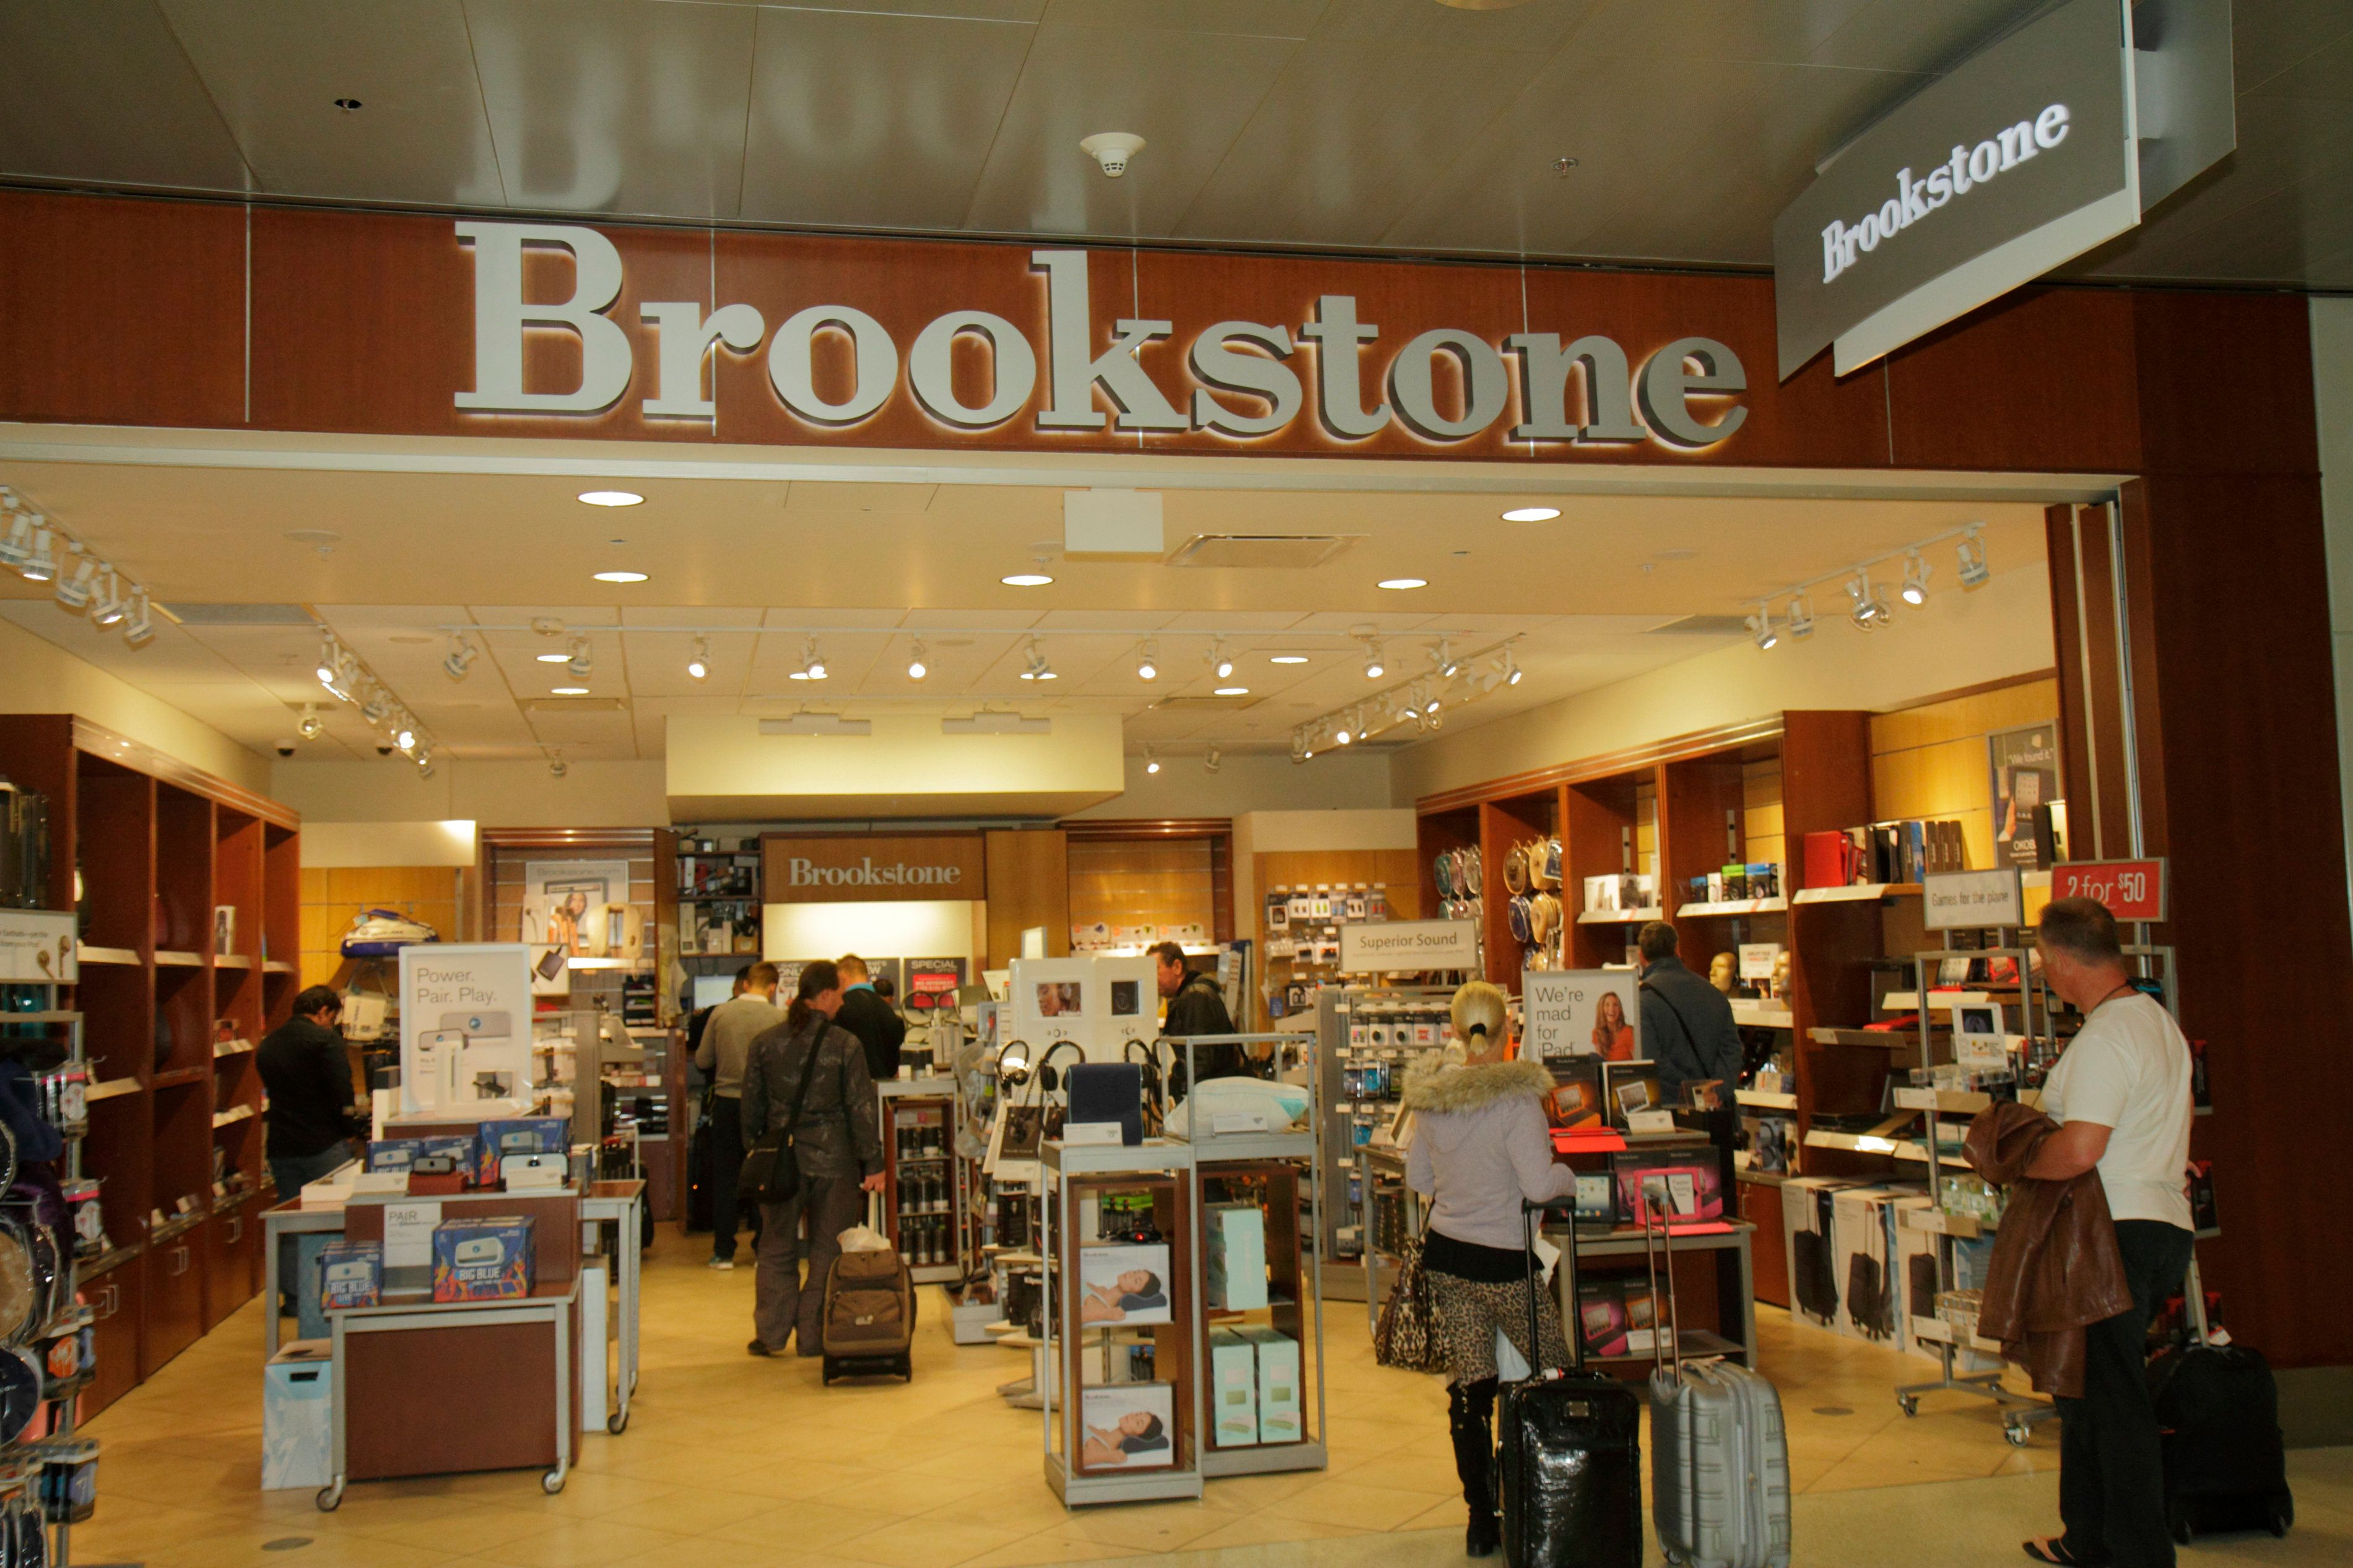 A Brookstone store at Miami International Airport. (Photo by: Jeffrey Greenberg/UIG via Getty Images)